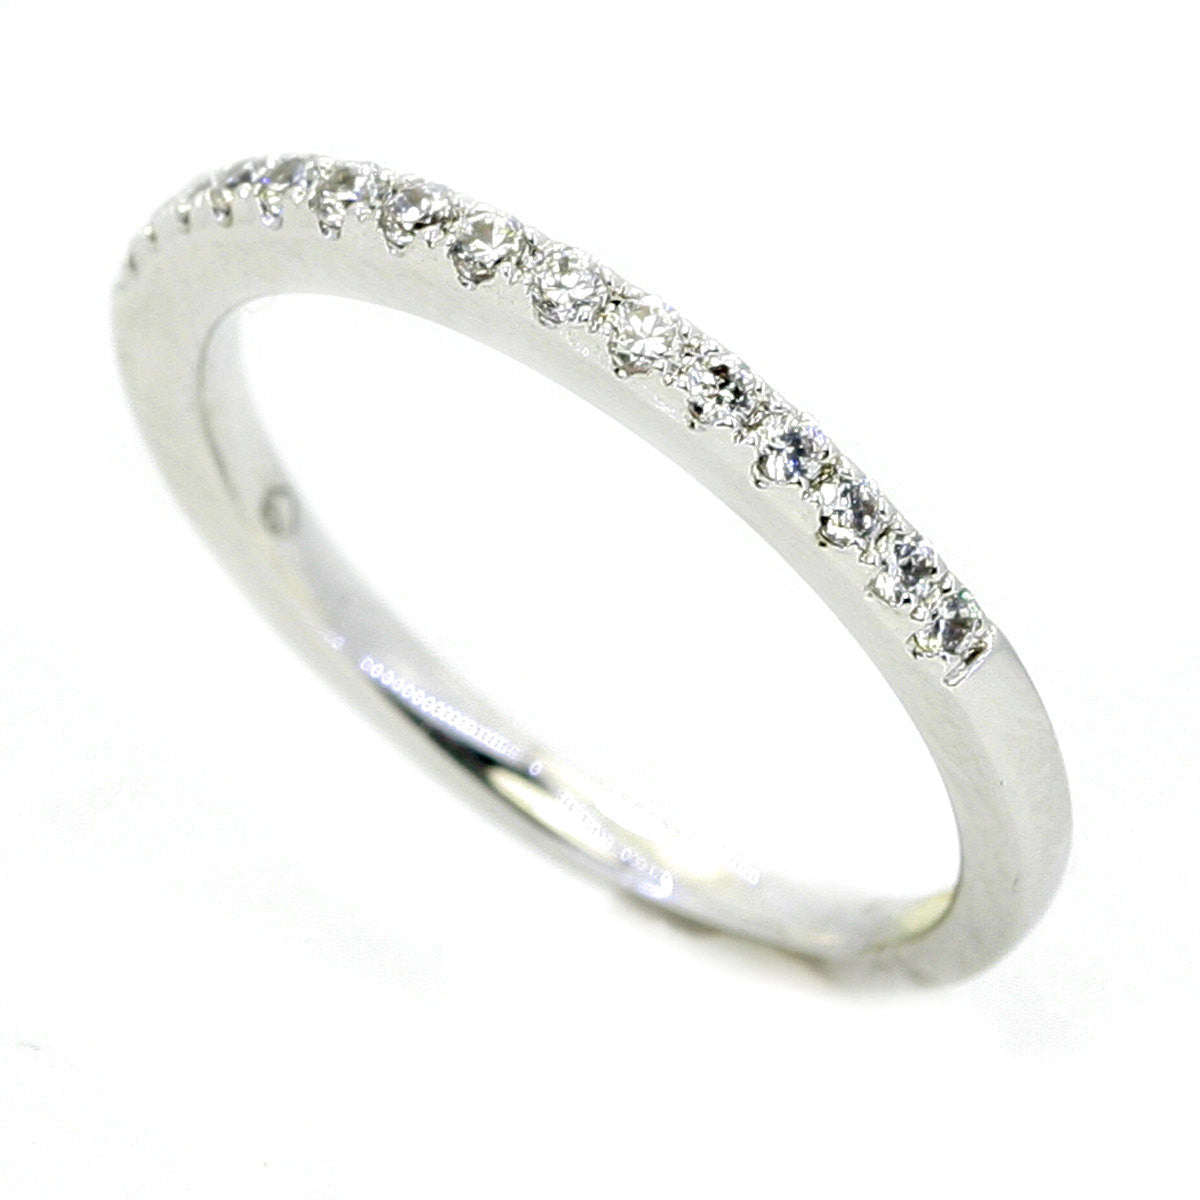 Diamond Wedding Band With Brilliant Cut Pavé Diamonds - UENS3193B